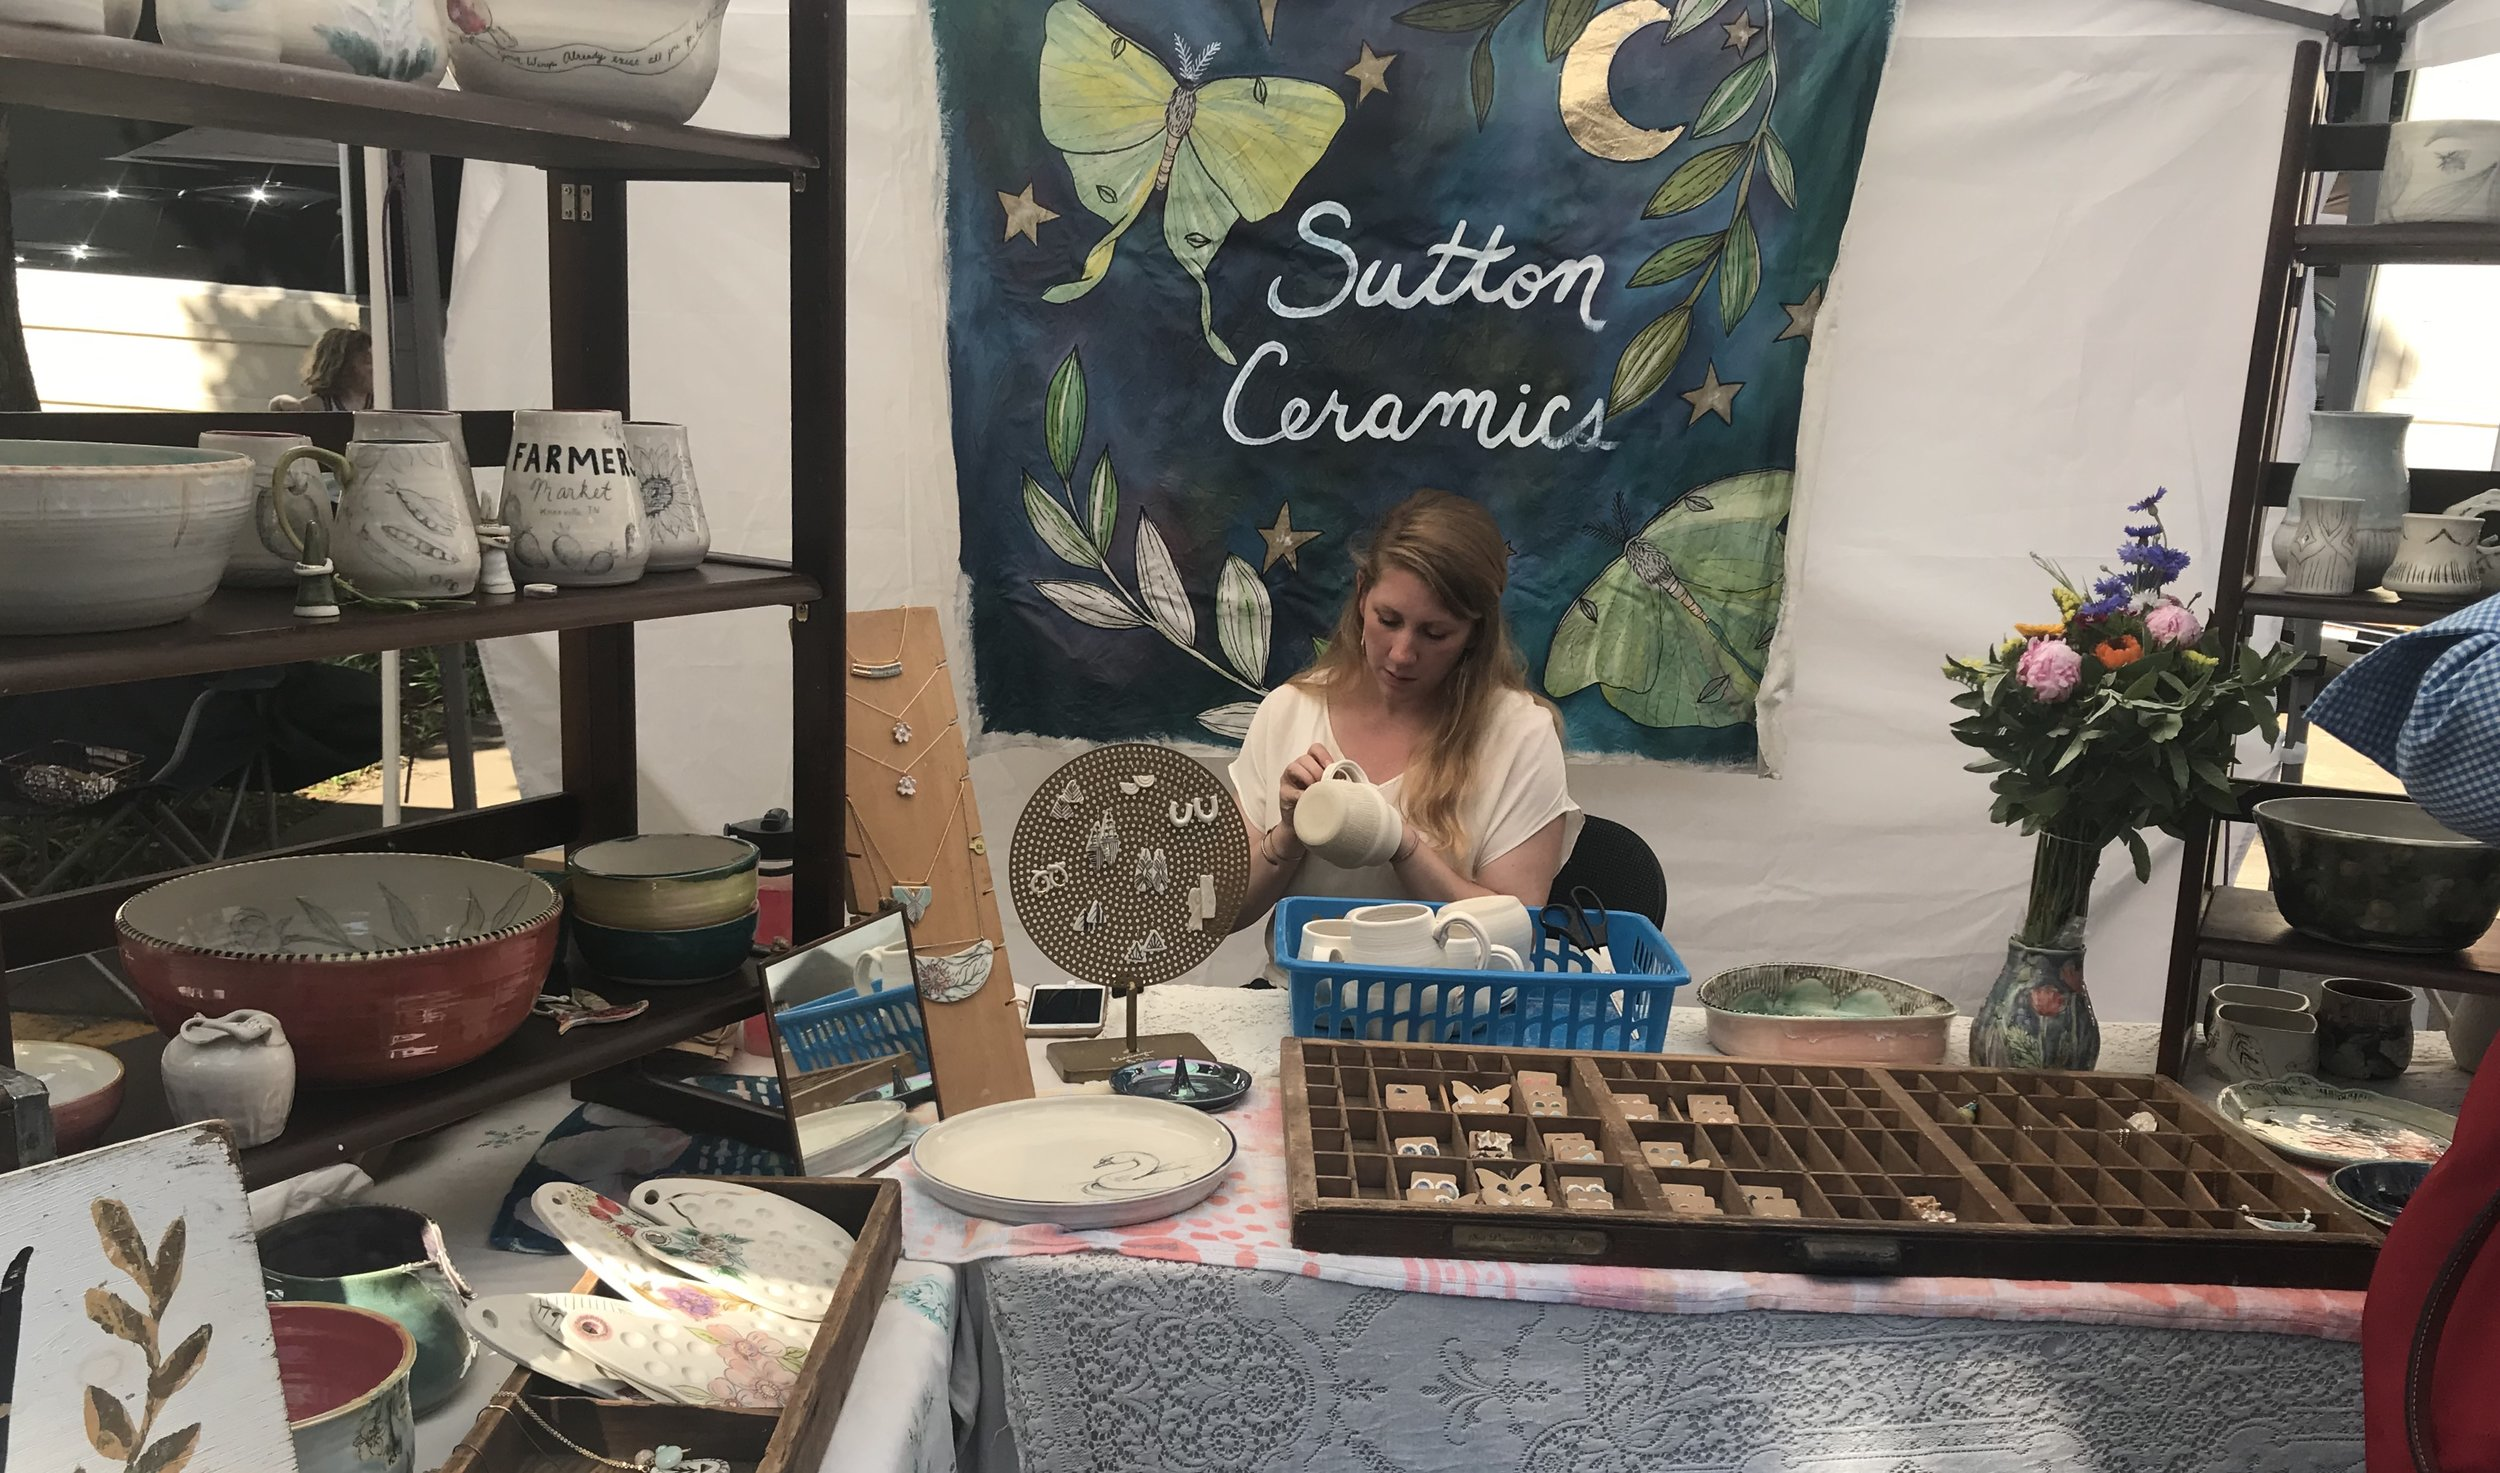 Lacey Sutton works on a piece at her ceramics booth